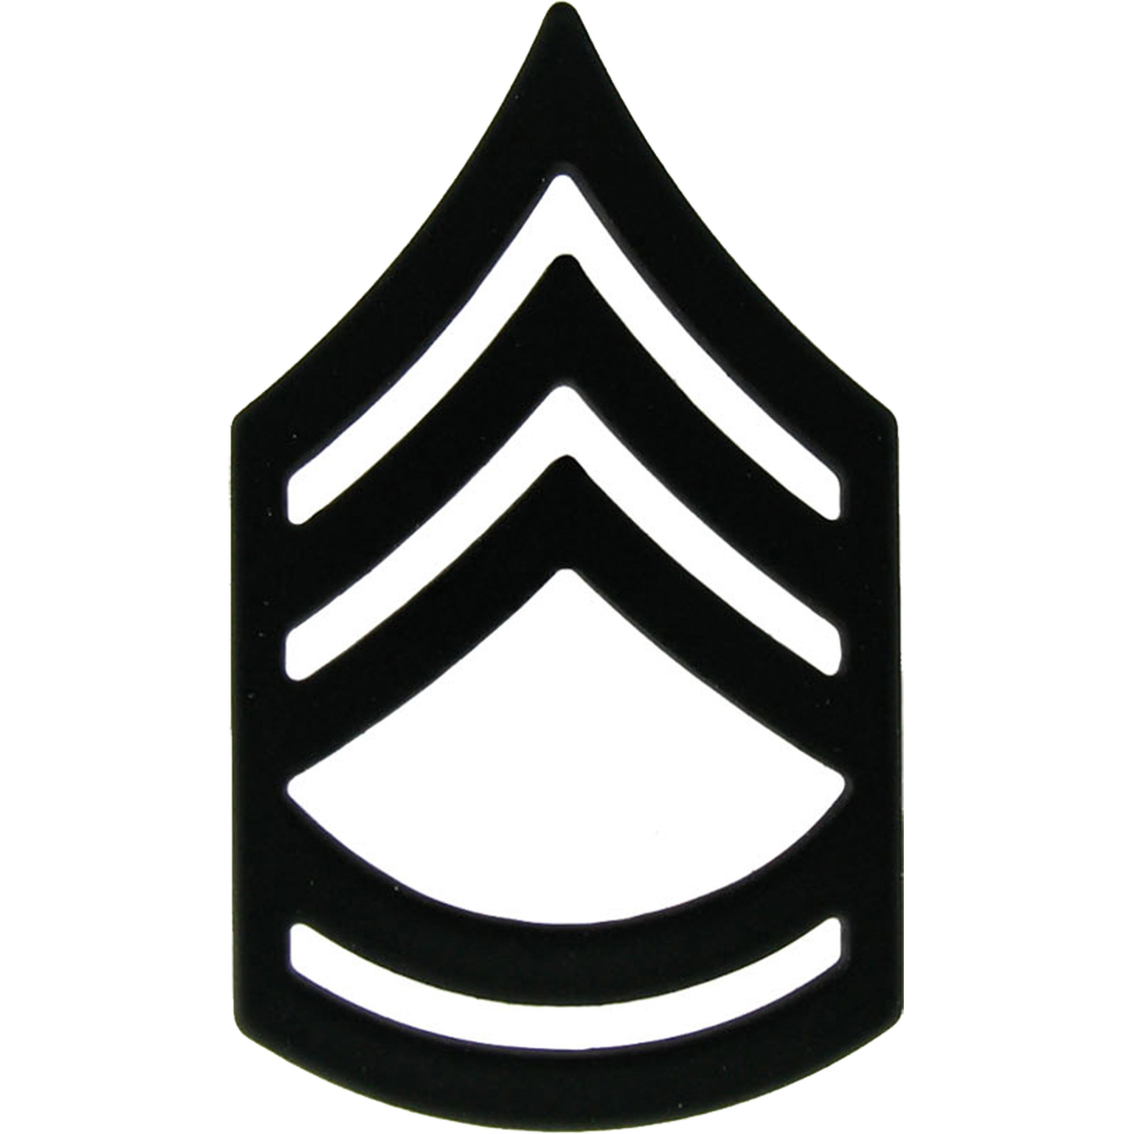 Army Sfc Subdued Pin-on Rank, 2 Pc. | Subdued Pin-on Rank | Military